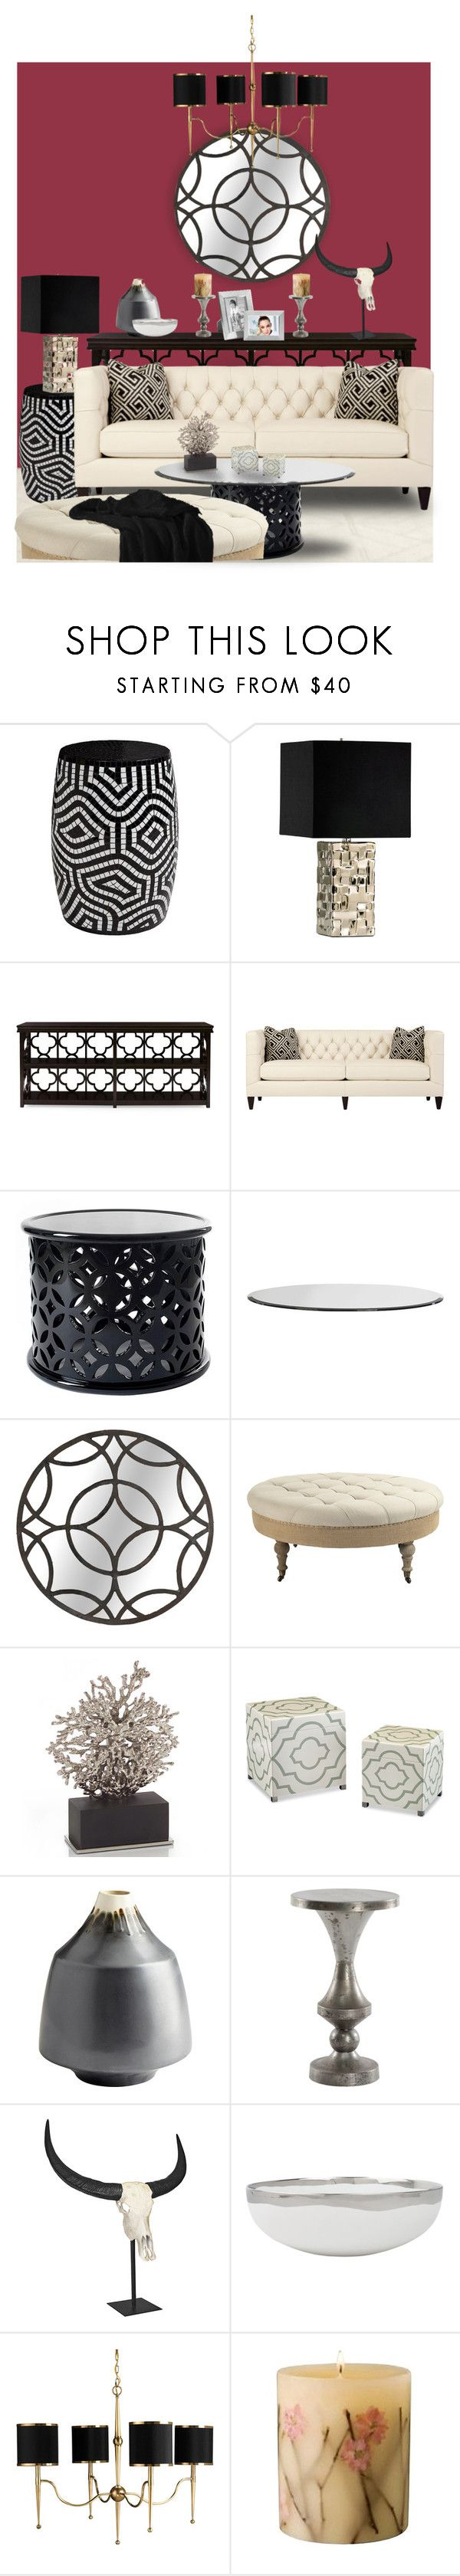 """Untitled #552"" by cemen ❤ liked on Polyvore featuring interior, interiors, interior design, home, home decor, interior decorating, Trilogy, Rosy Rings and Arthur Court Designs"